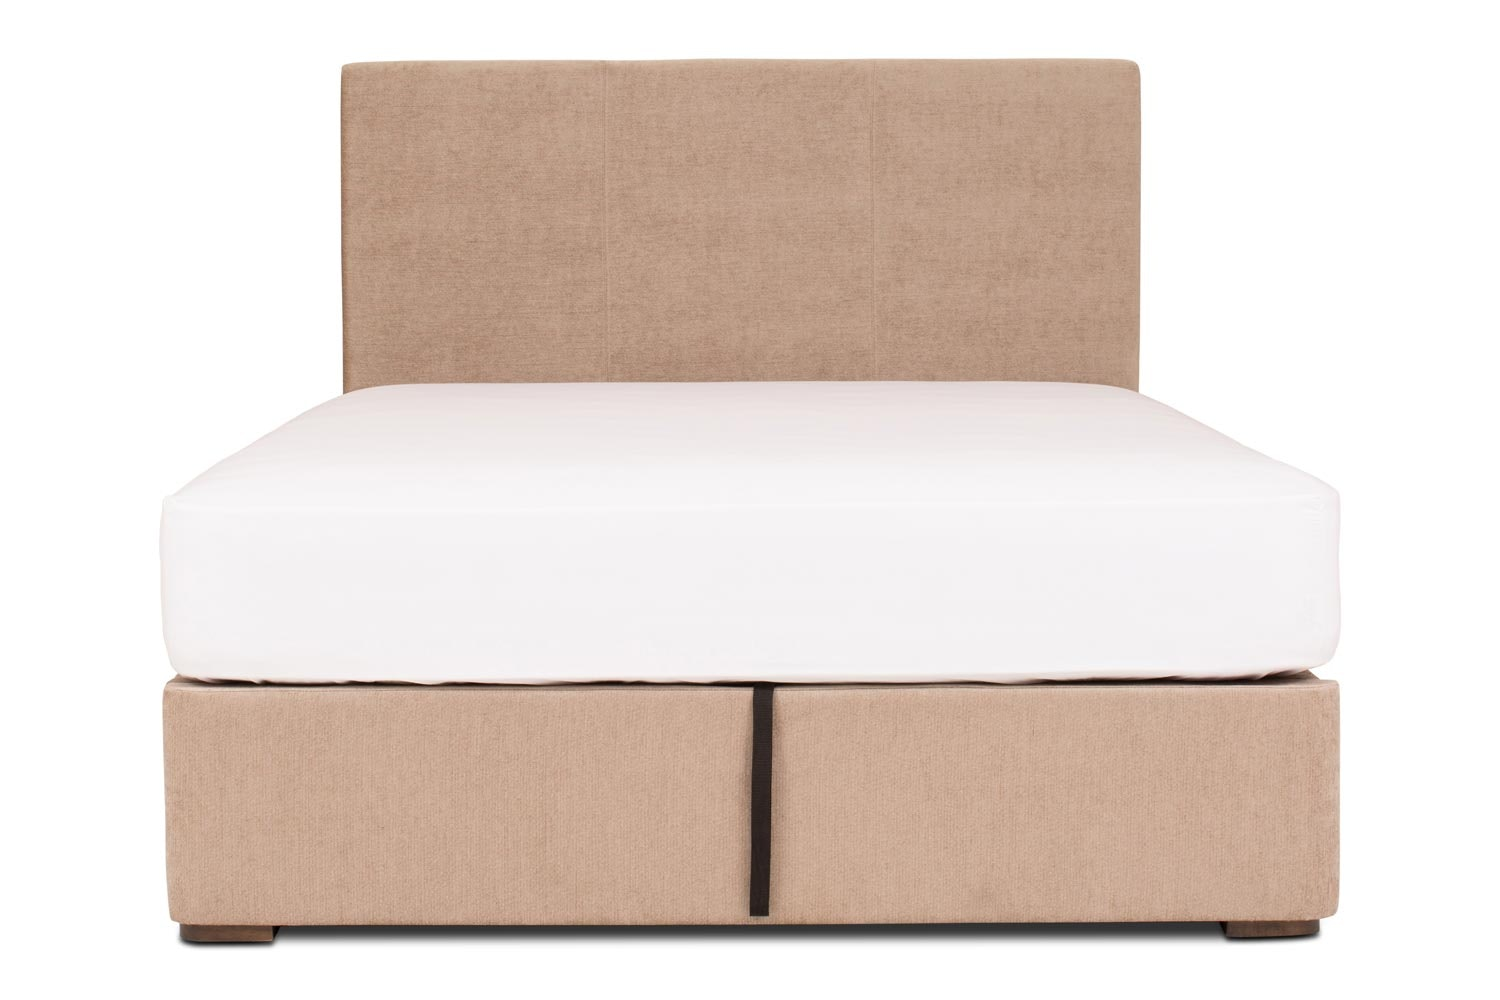 Duval Ottoman Bed with V Stitch Headboard | 6Ft | Mink